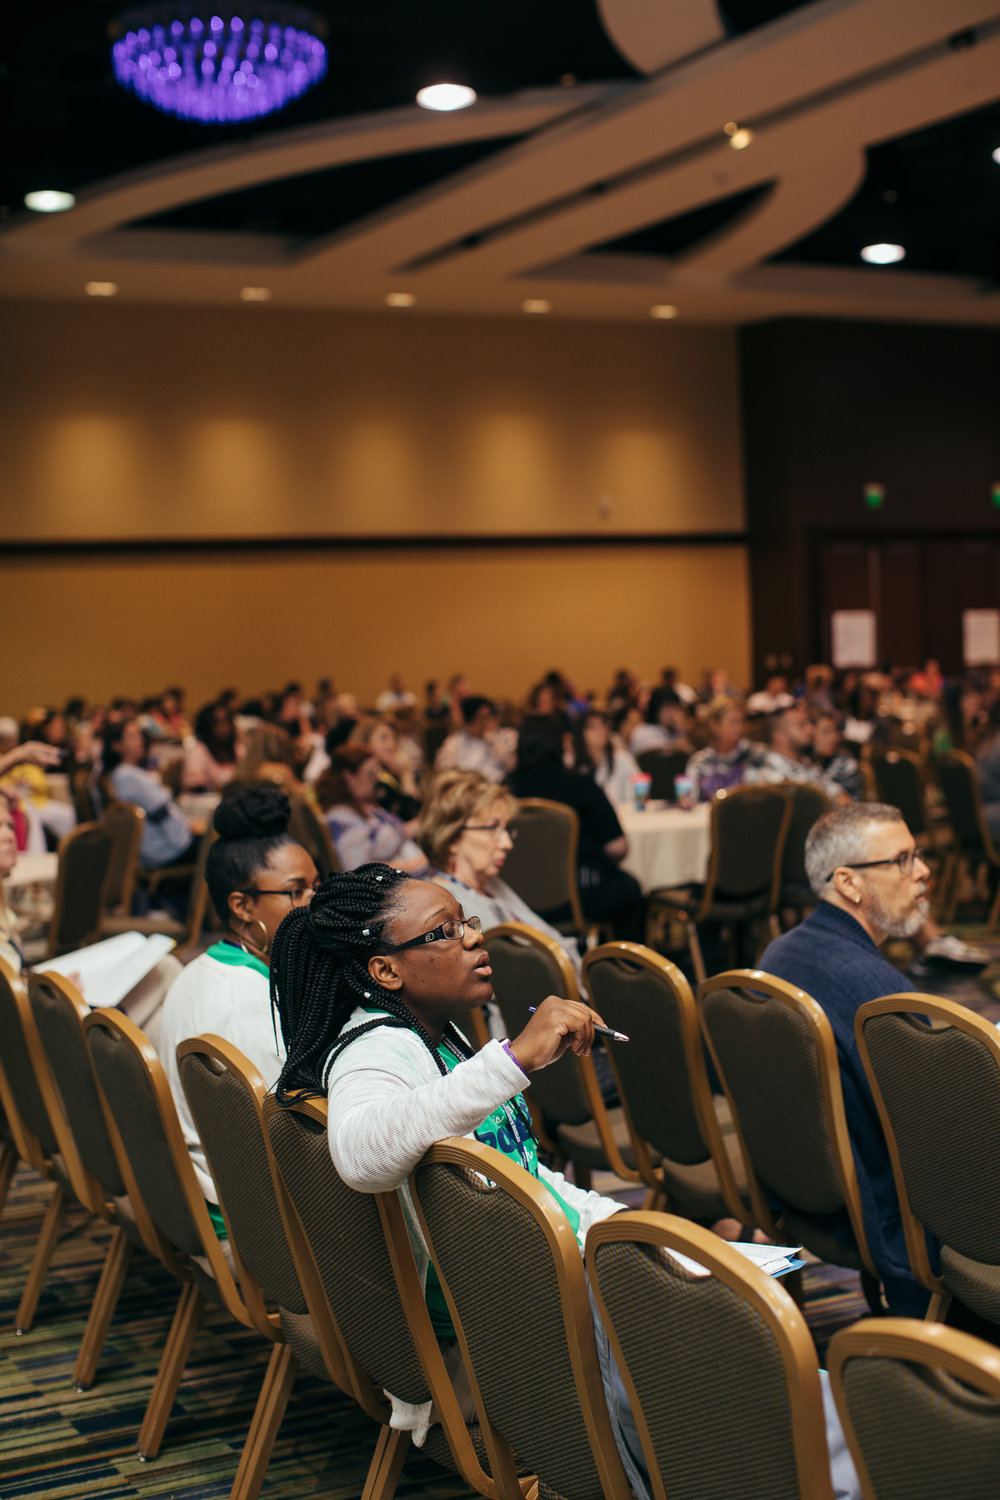 live event commercial photography brand storytelling for education florida conference photographer ©2018abigailbobophotography-67.jpg